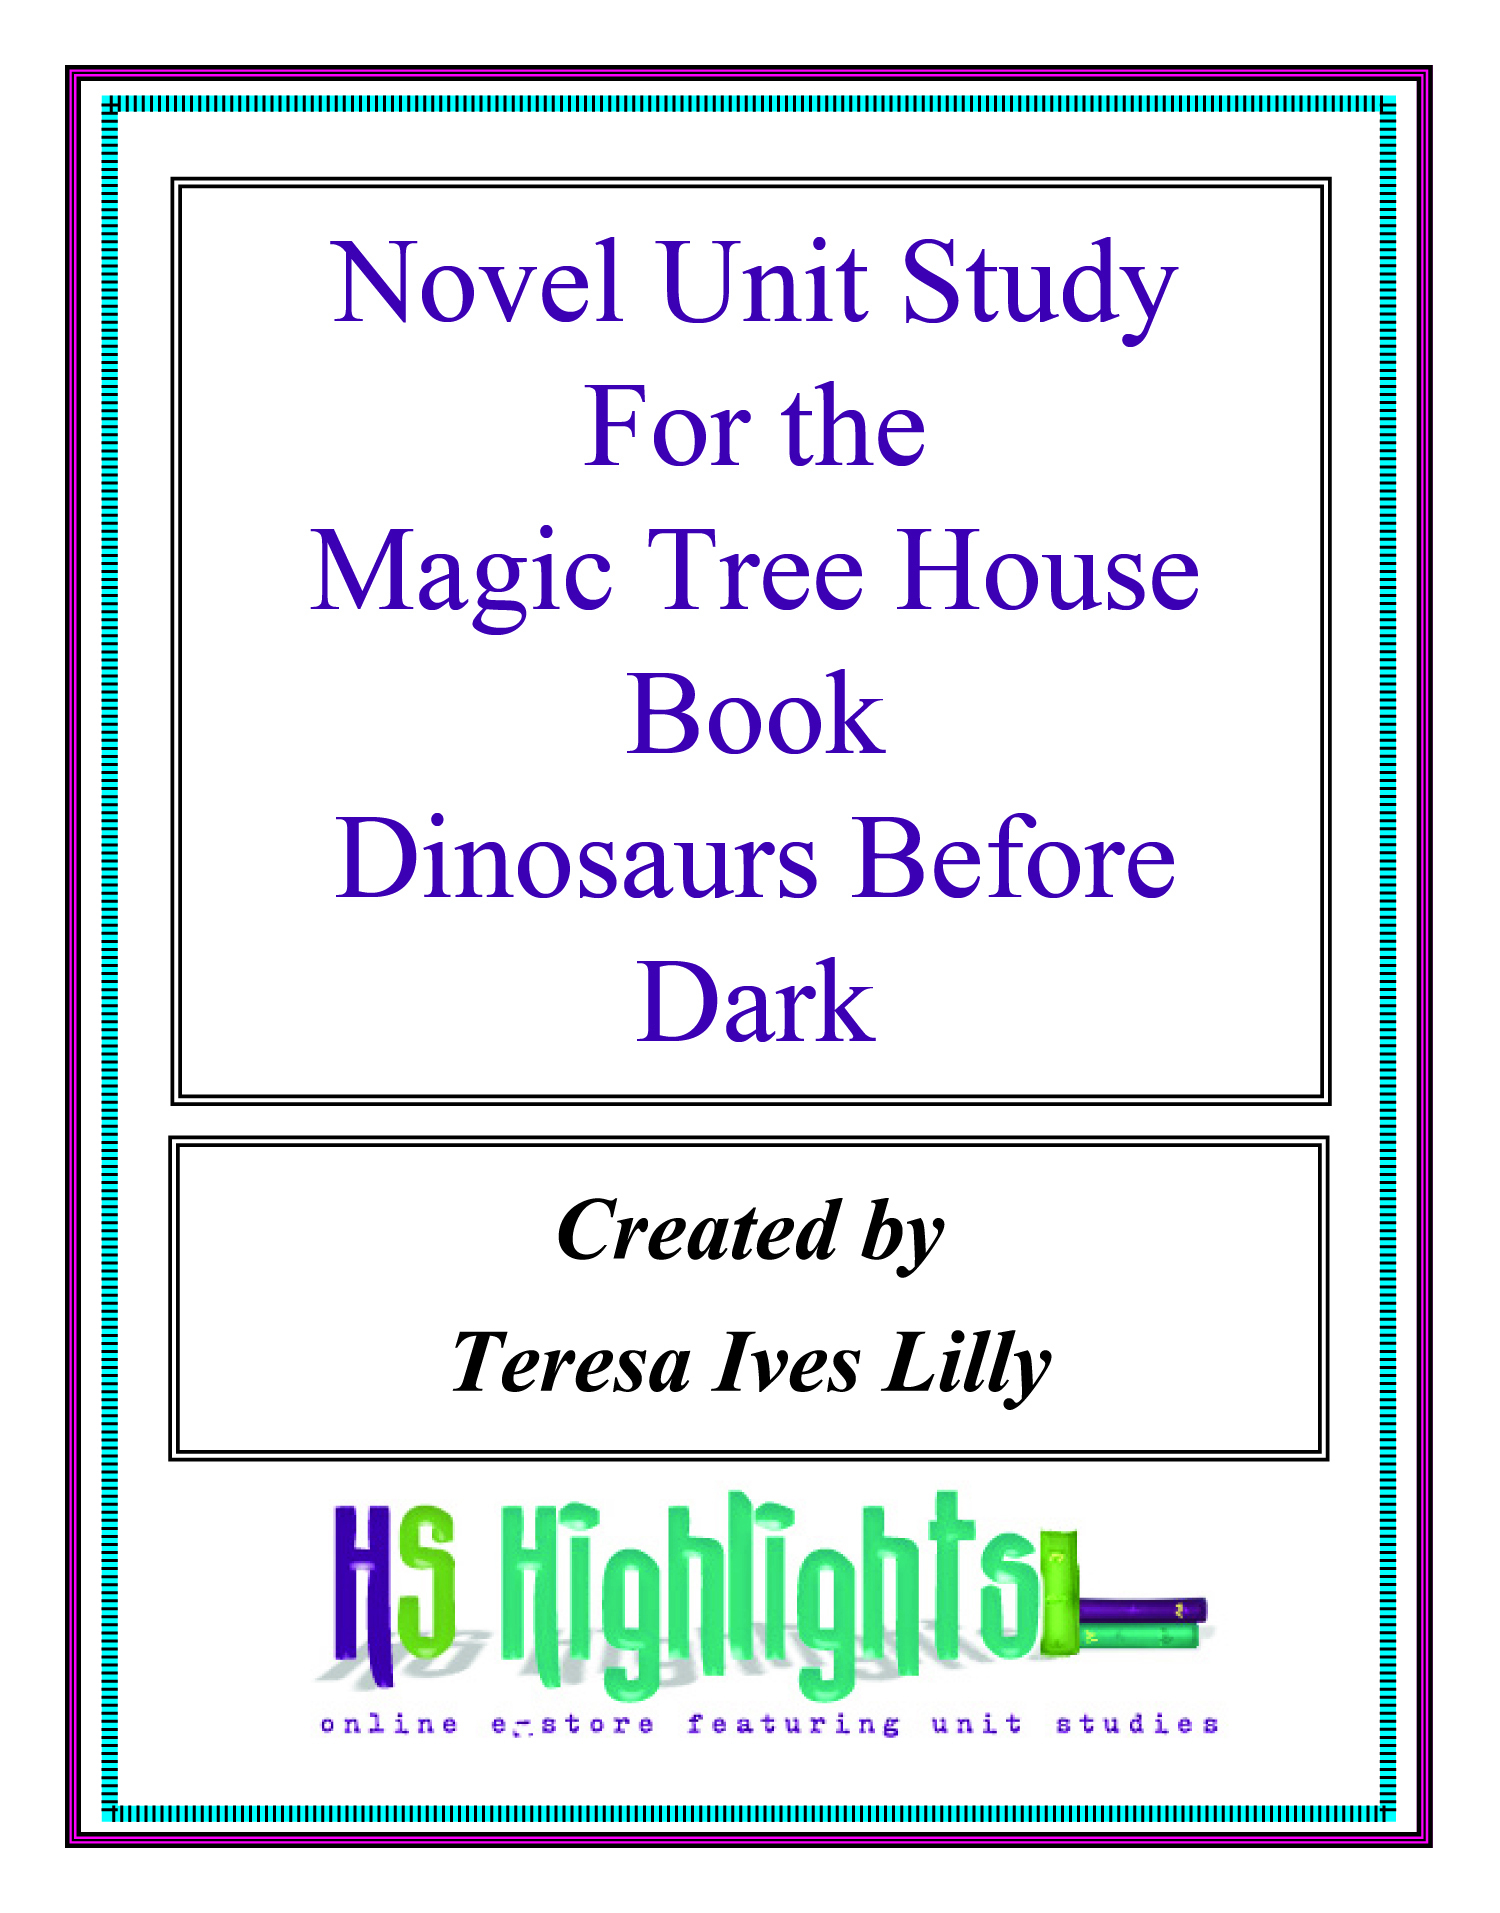 Novel Unit Study for the Magic Tree House Book Dinosaurs Before Dark